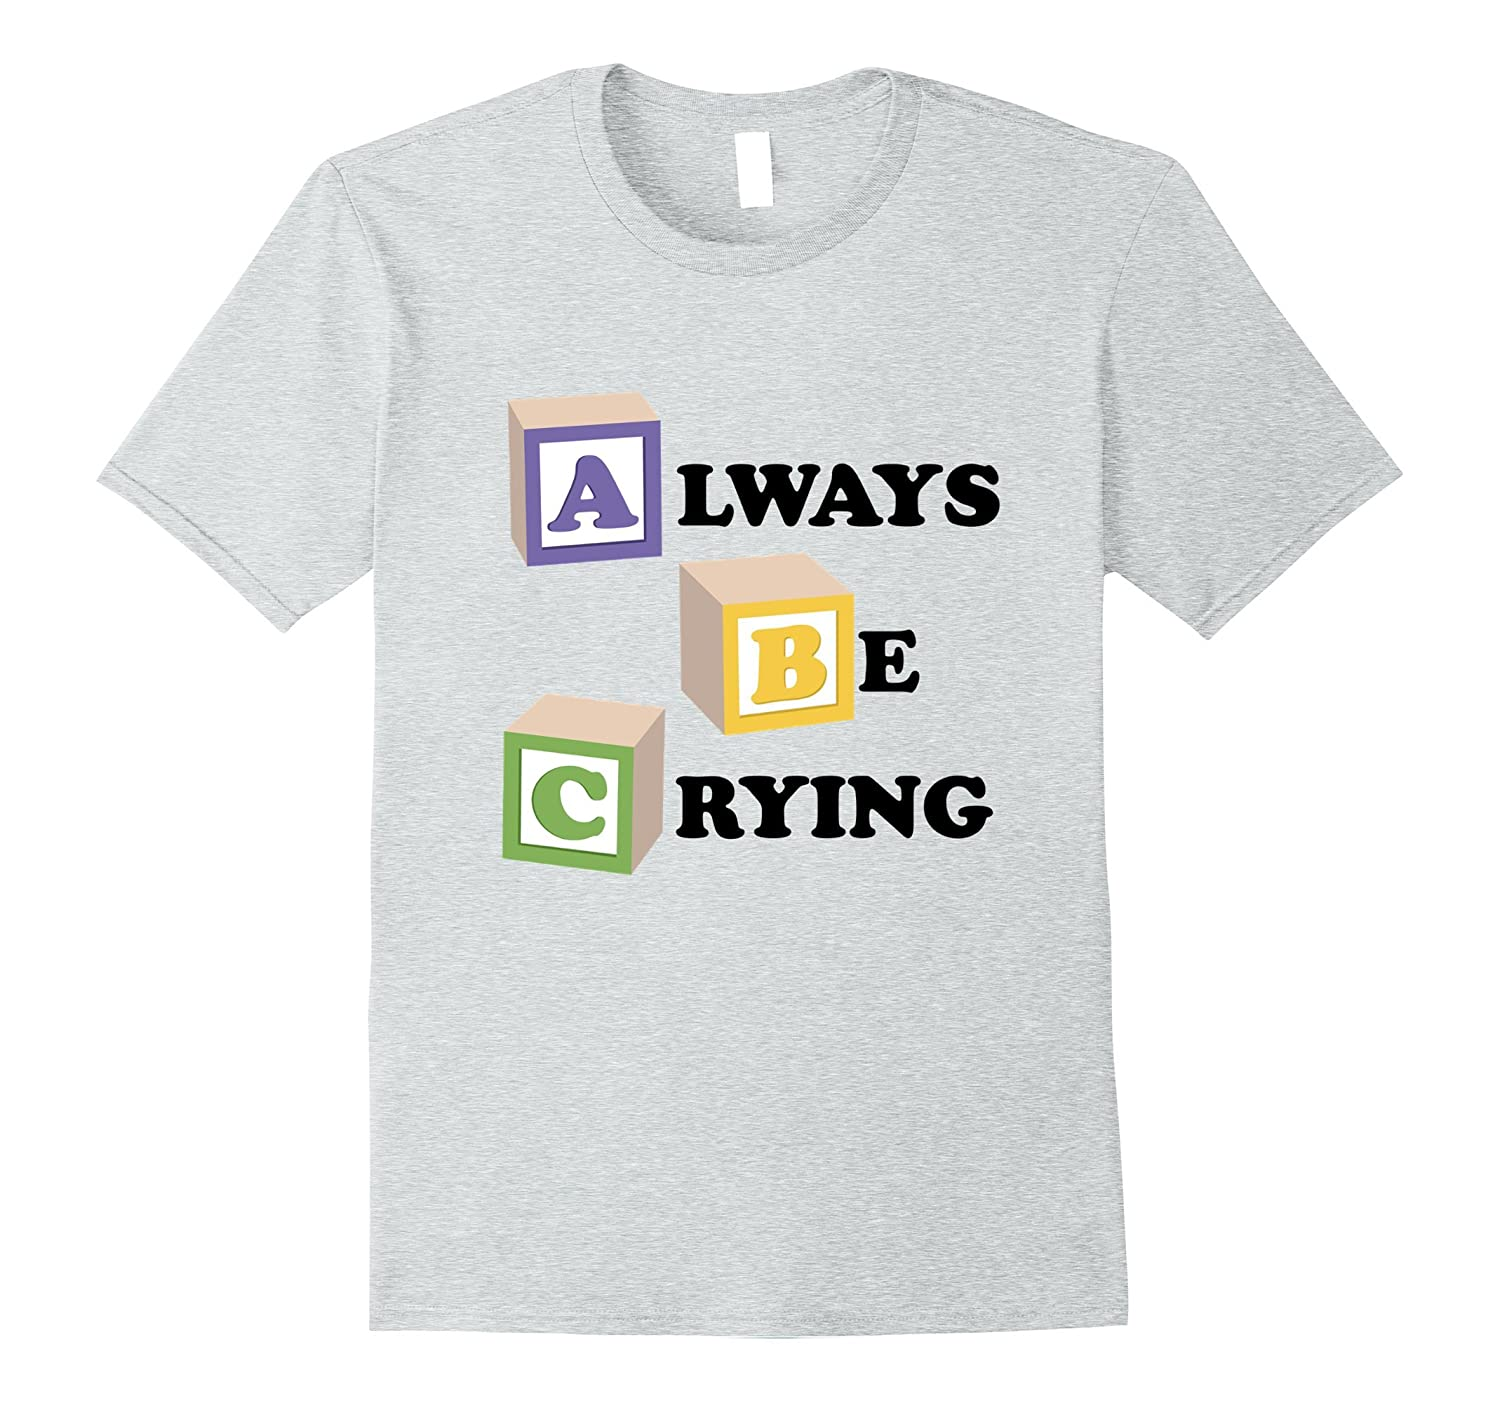 ABC Always Be Crying T-Shirt – Funny Depression Anxiety